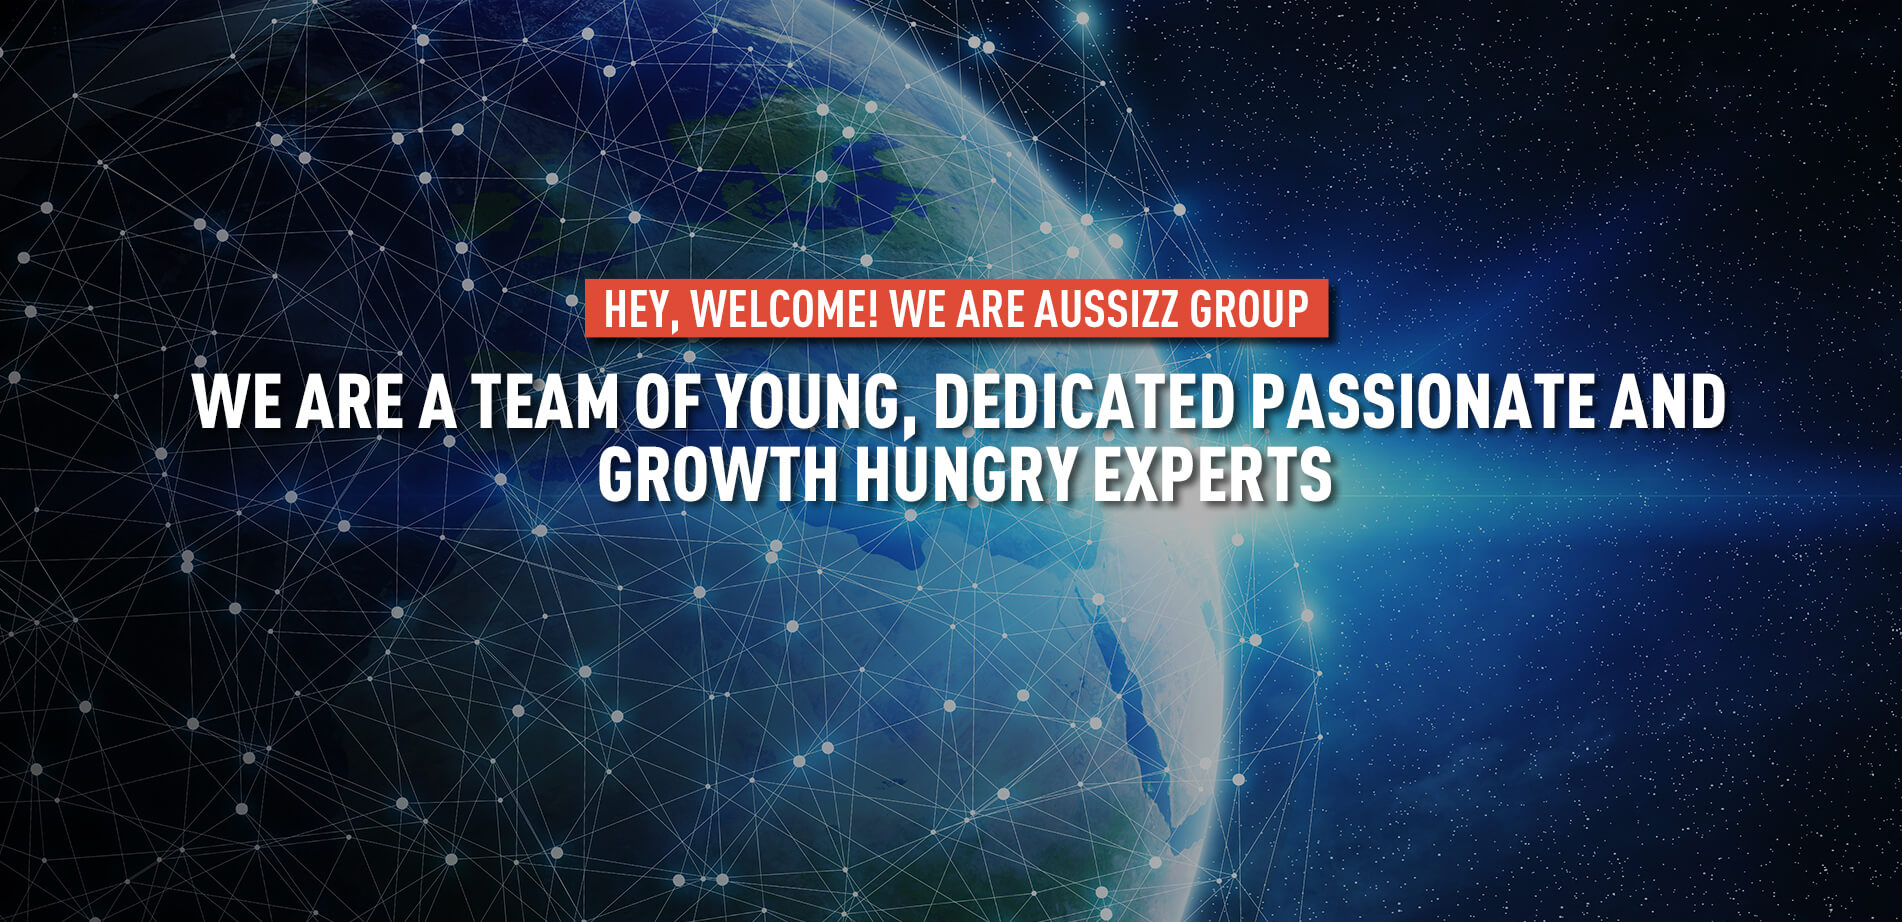 Team of Aussizz Group